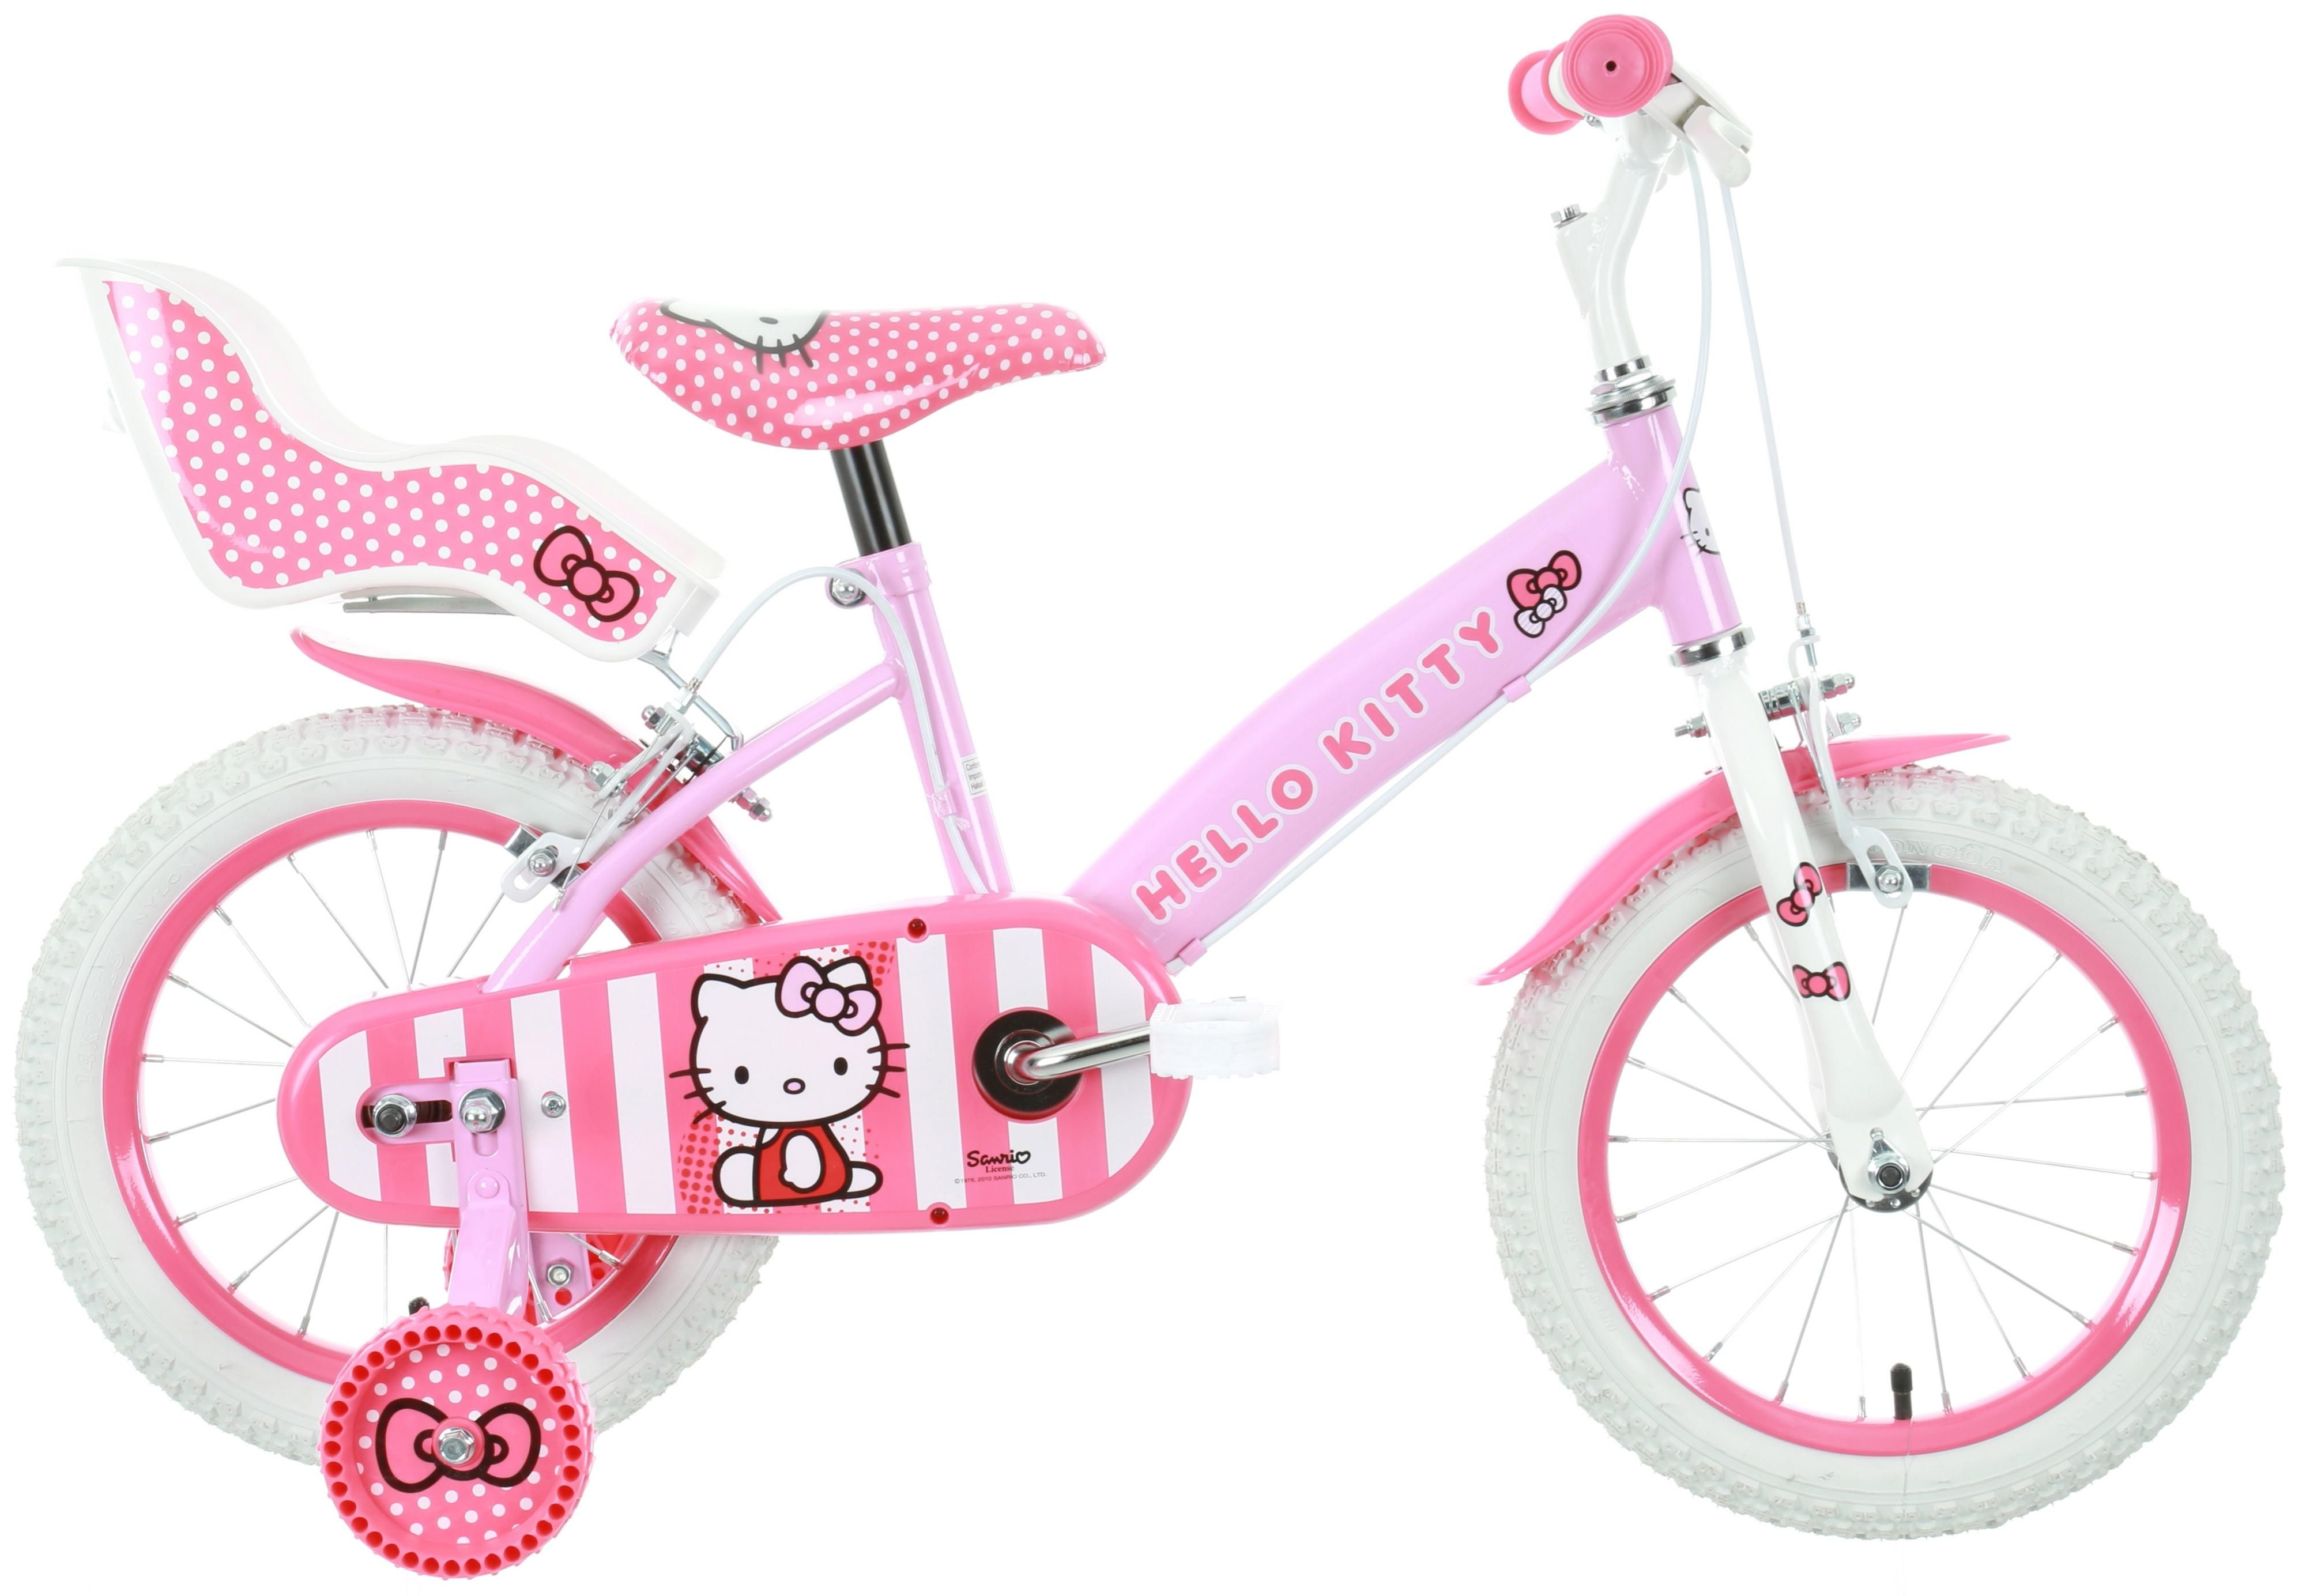 Purrfect for Hello Kitty fans this lush bike has a fully enclosed